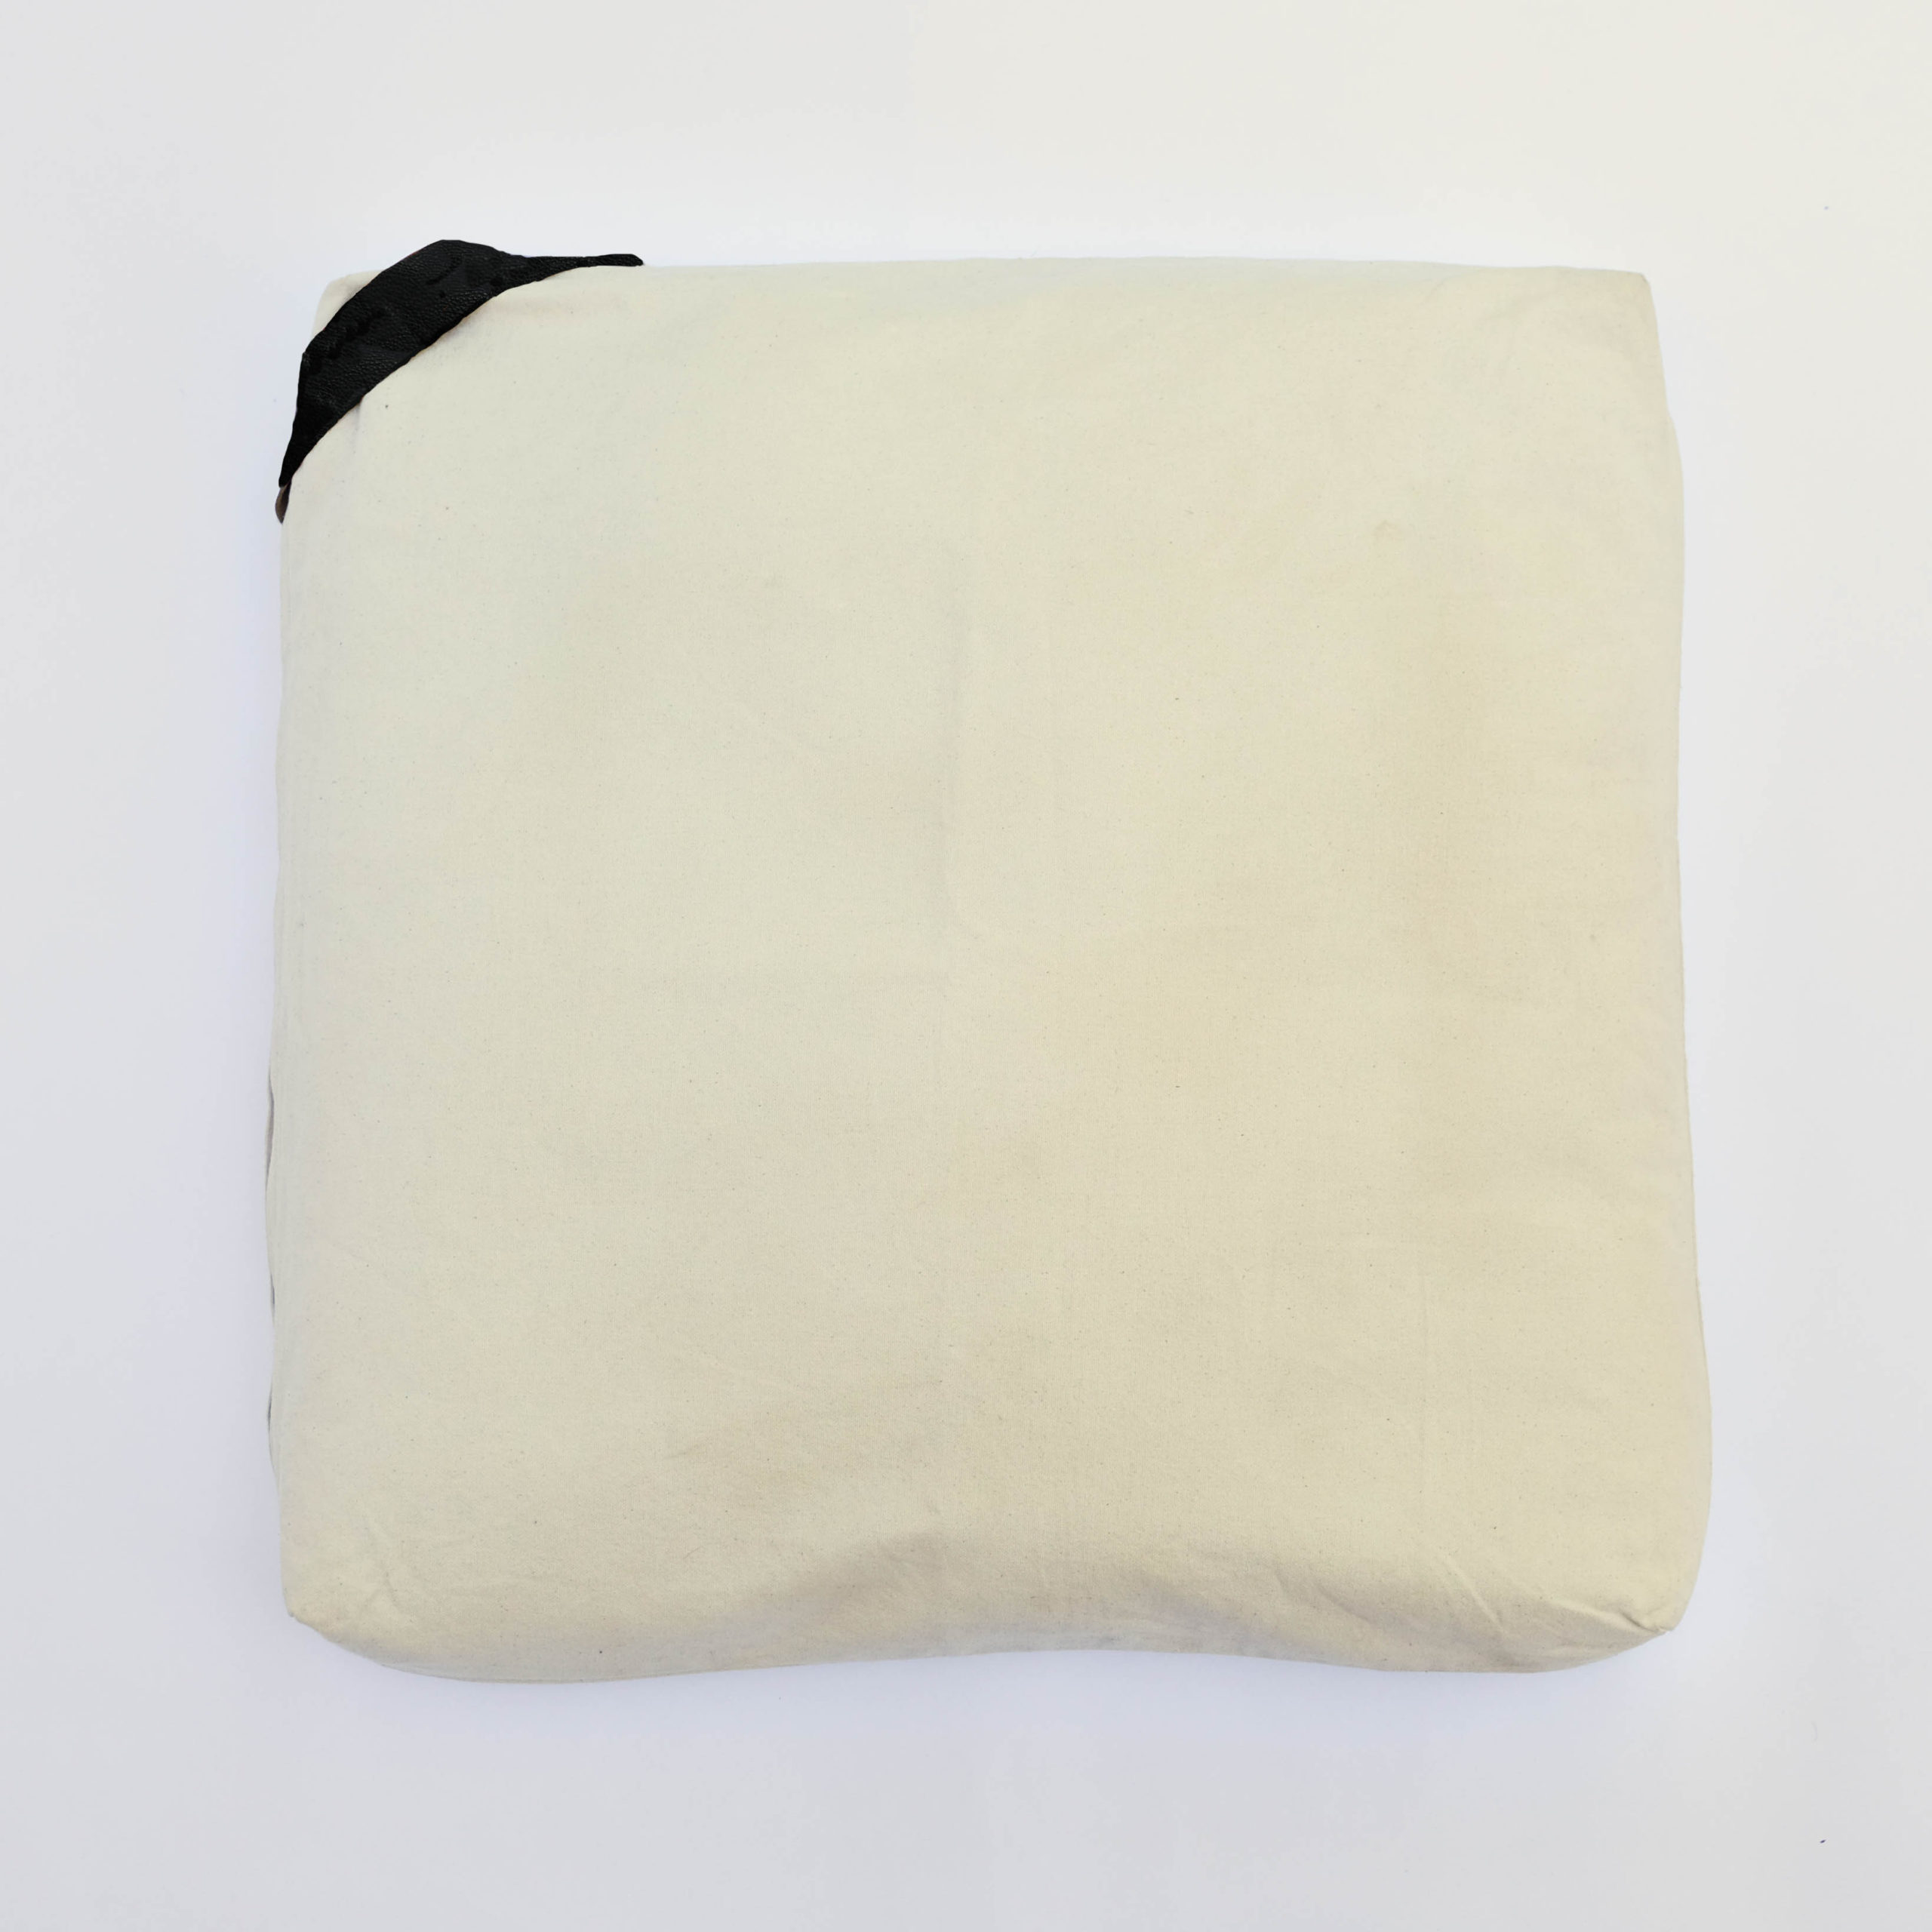 floor cushion naturally dyed sustainable organic cotton borrego sand black front view